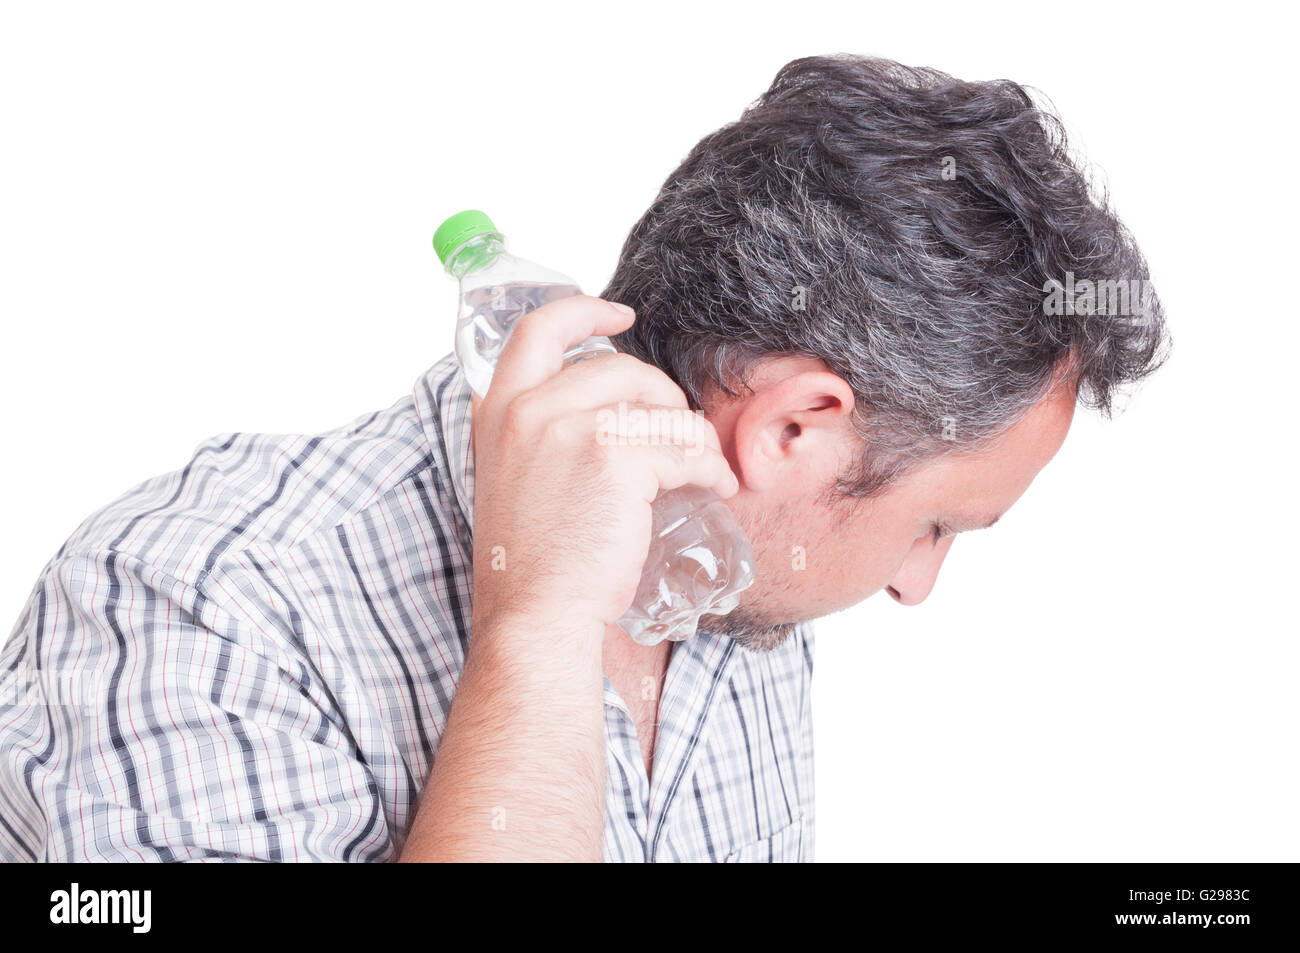 Man cooling down with a bottle of cold water as summer heat or heatwave concept - Stock Image